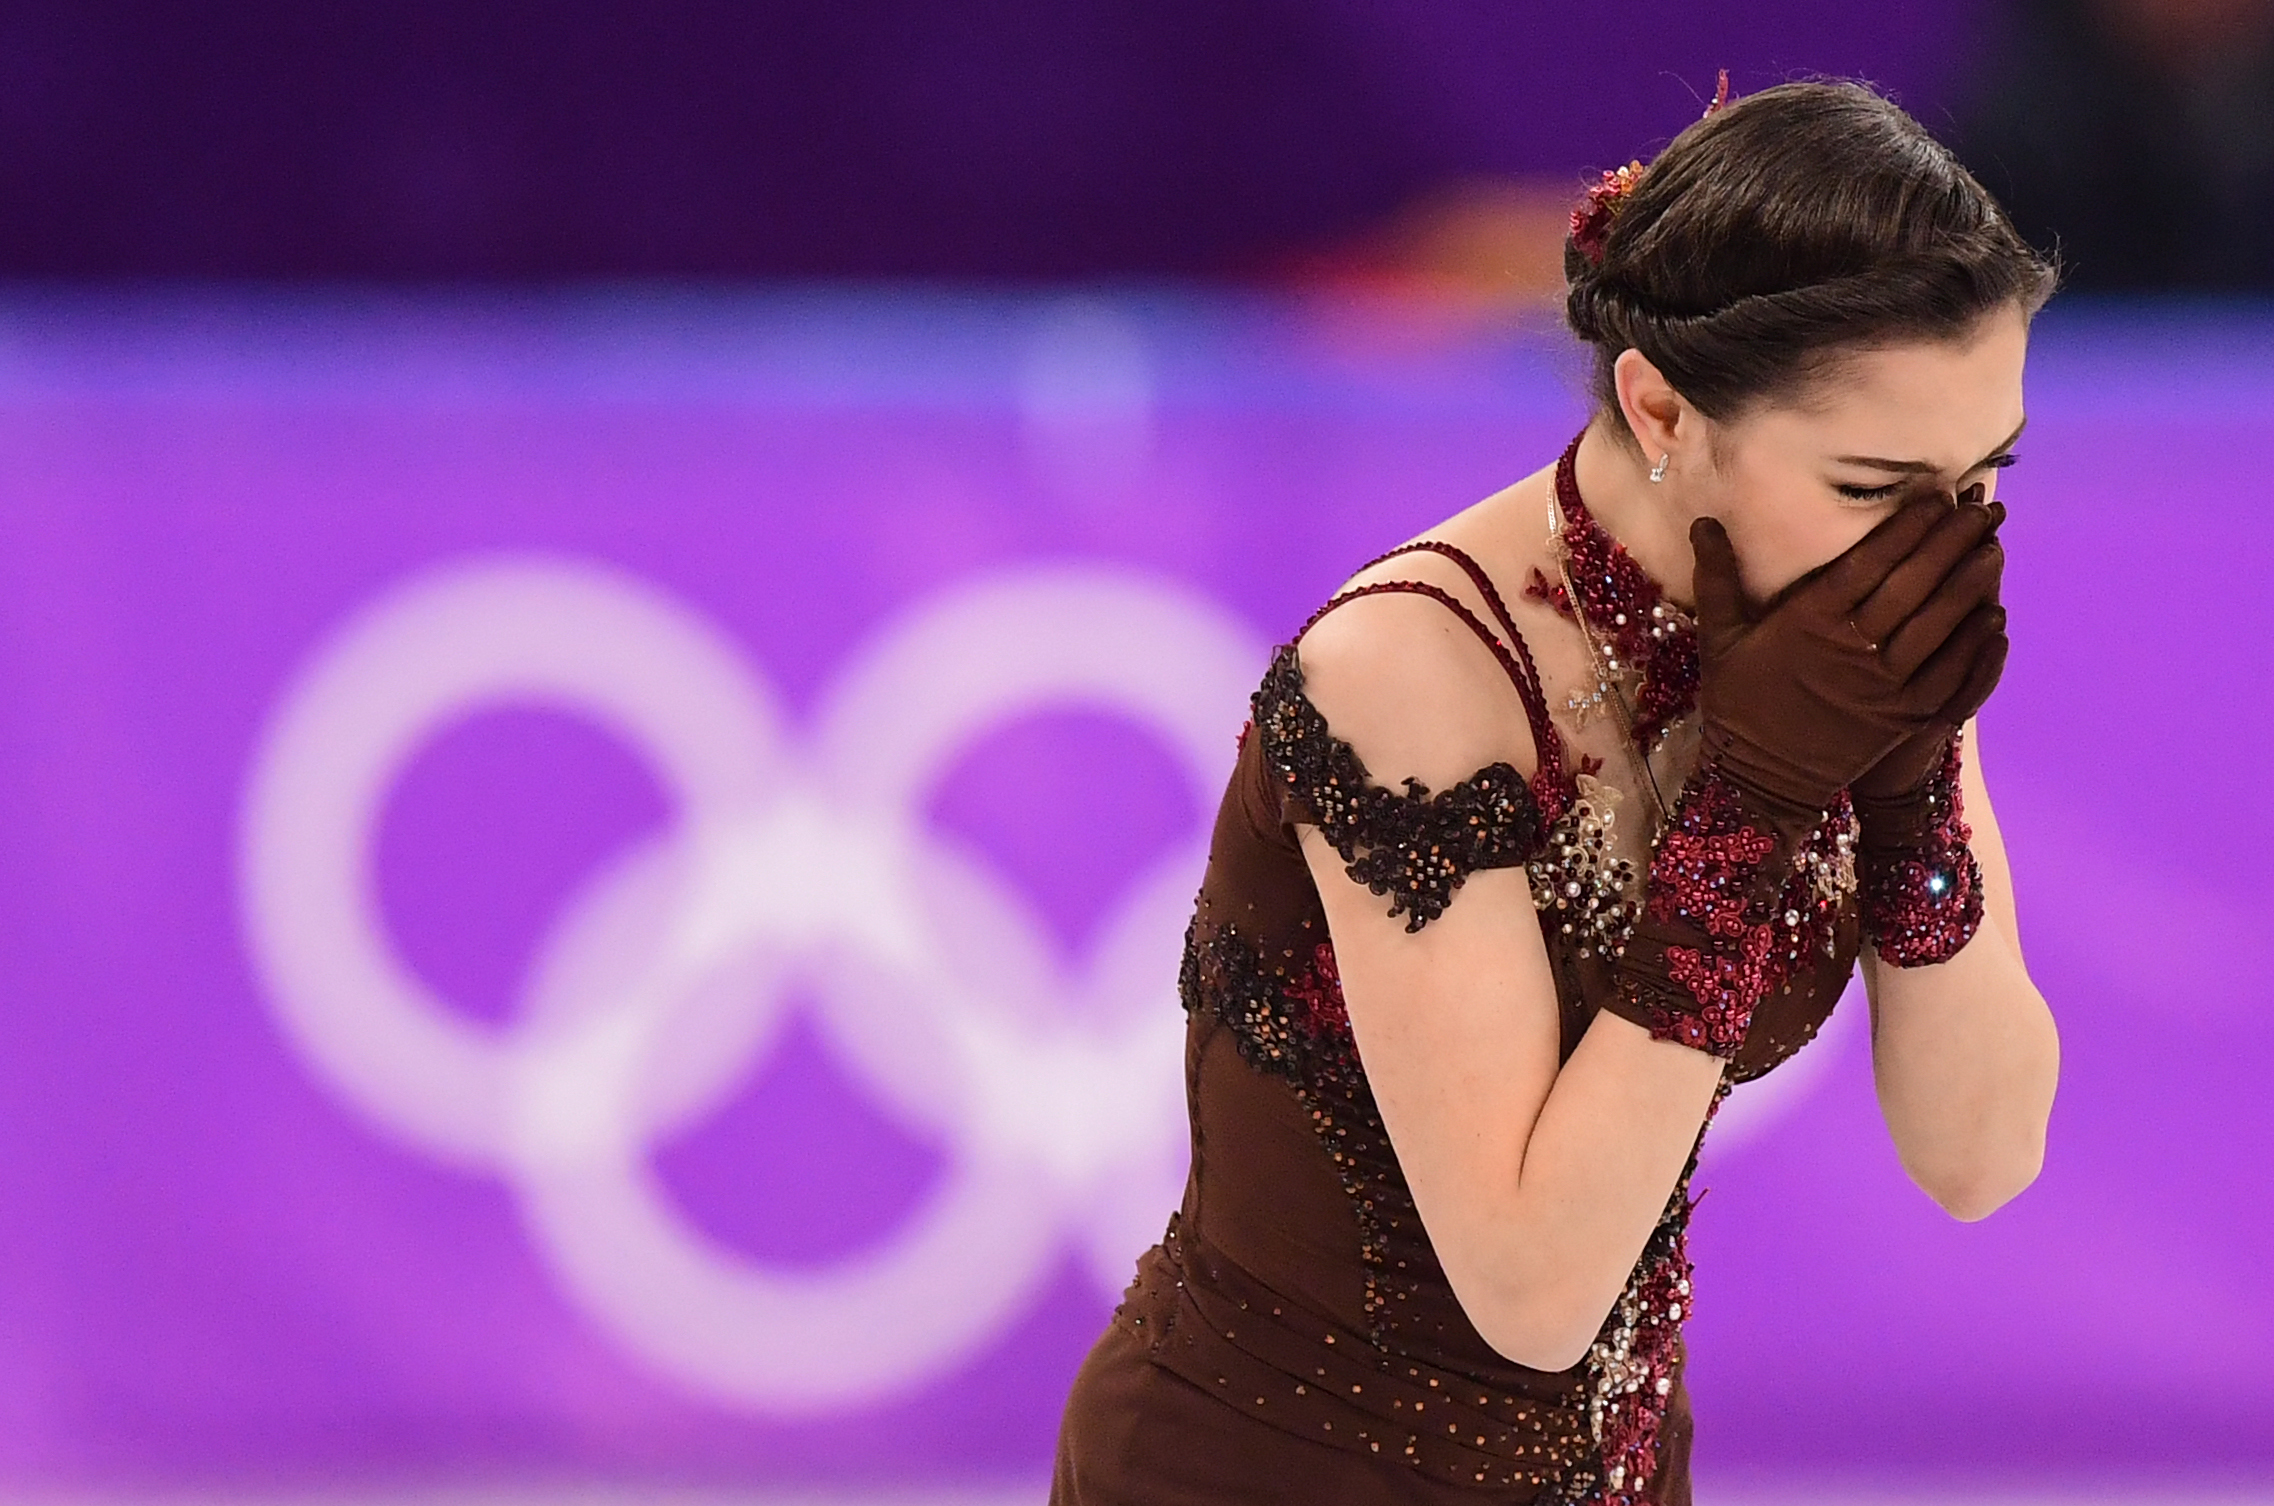 Russia's Evgenia Medvedeva took silver in the women's single figure skating event during the Pyeongchang 2018 Winter Olympic Games.